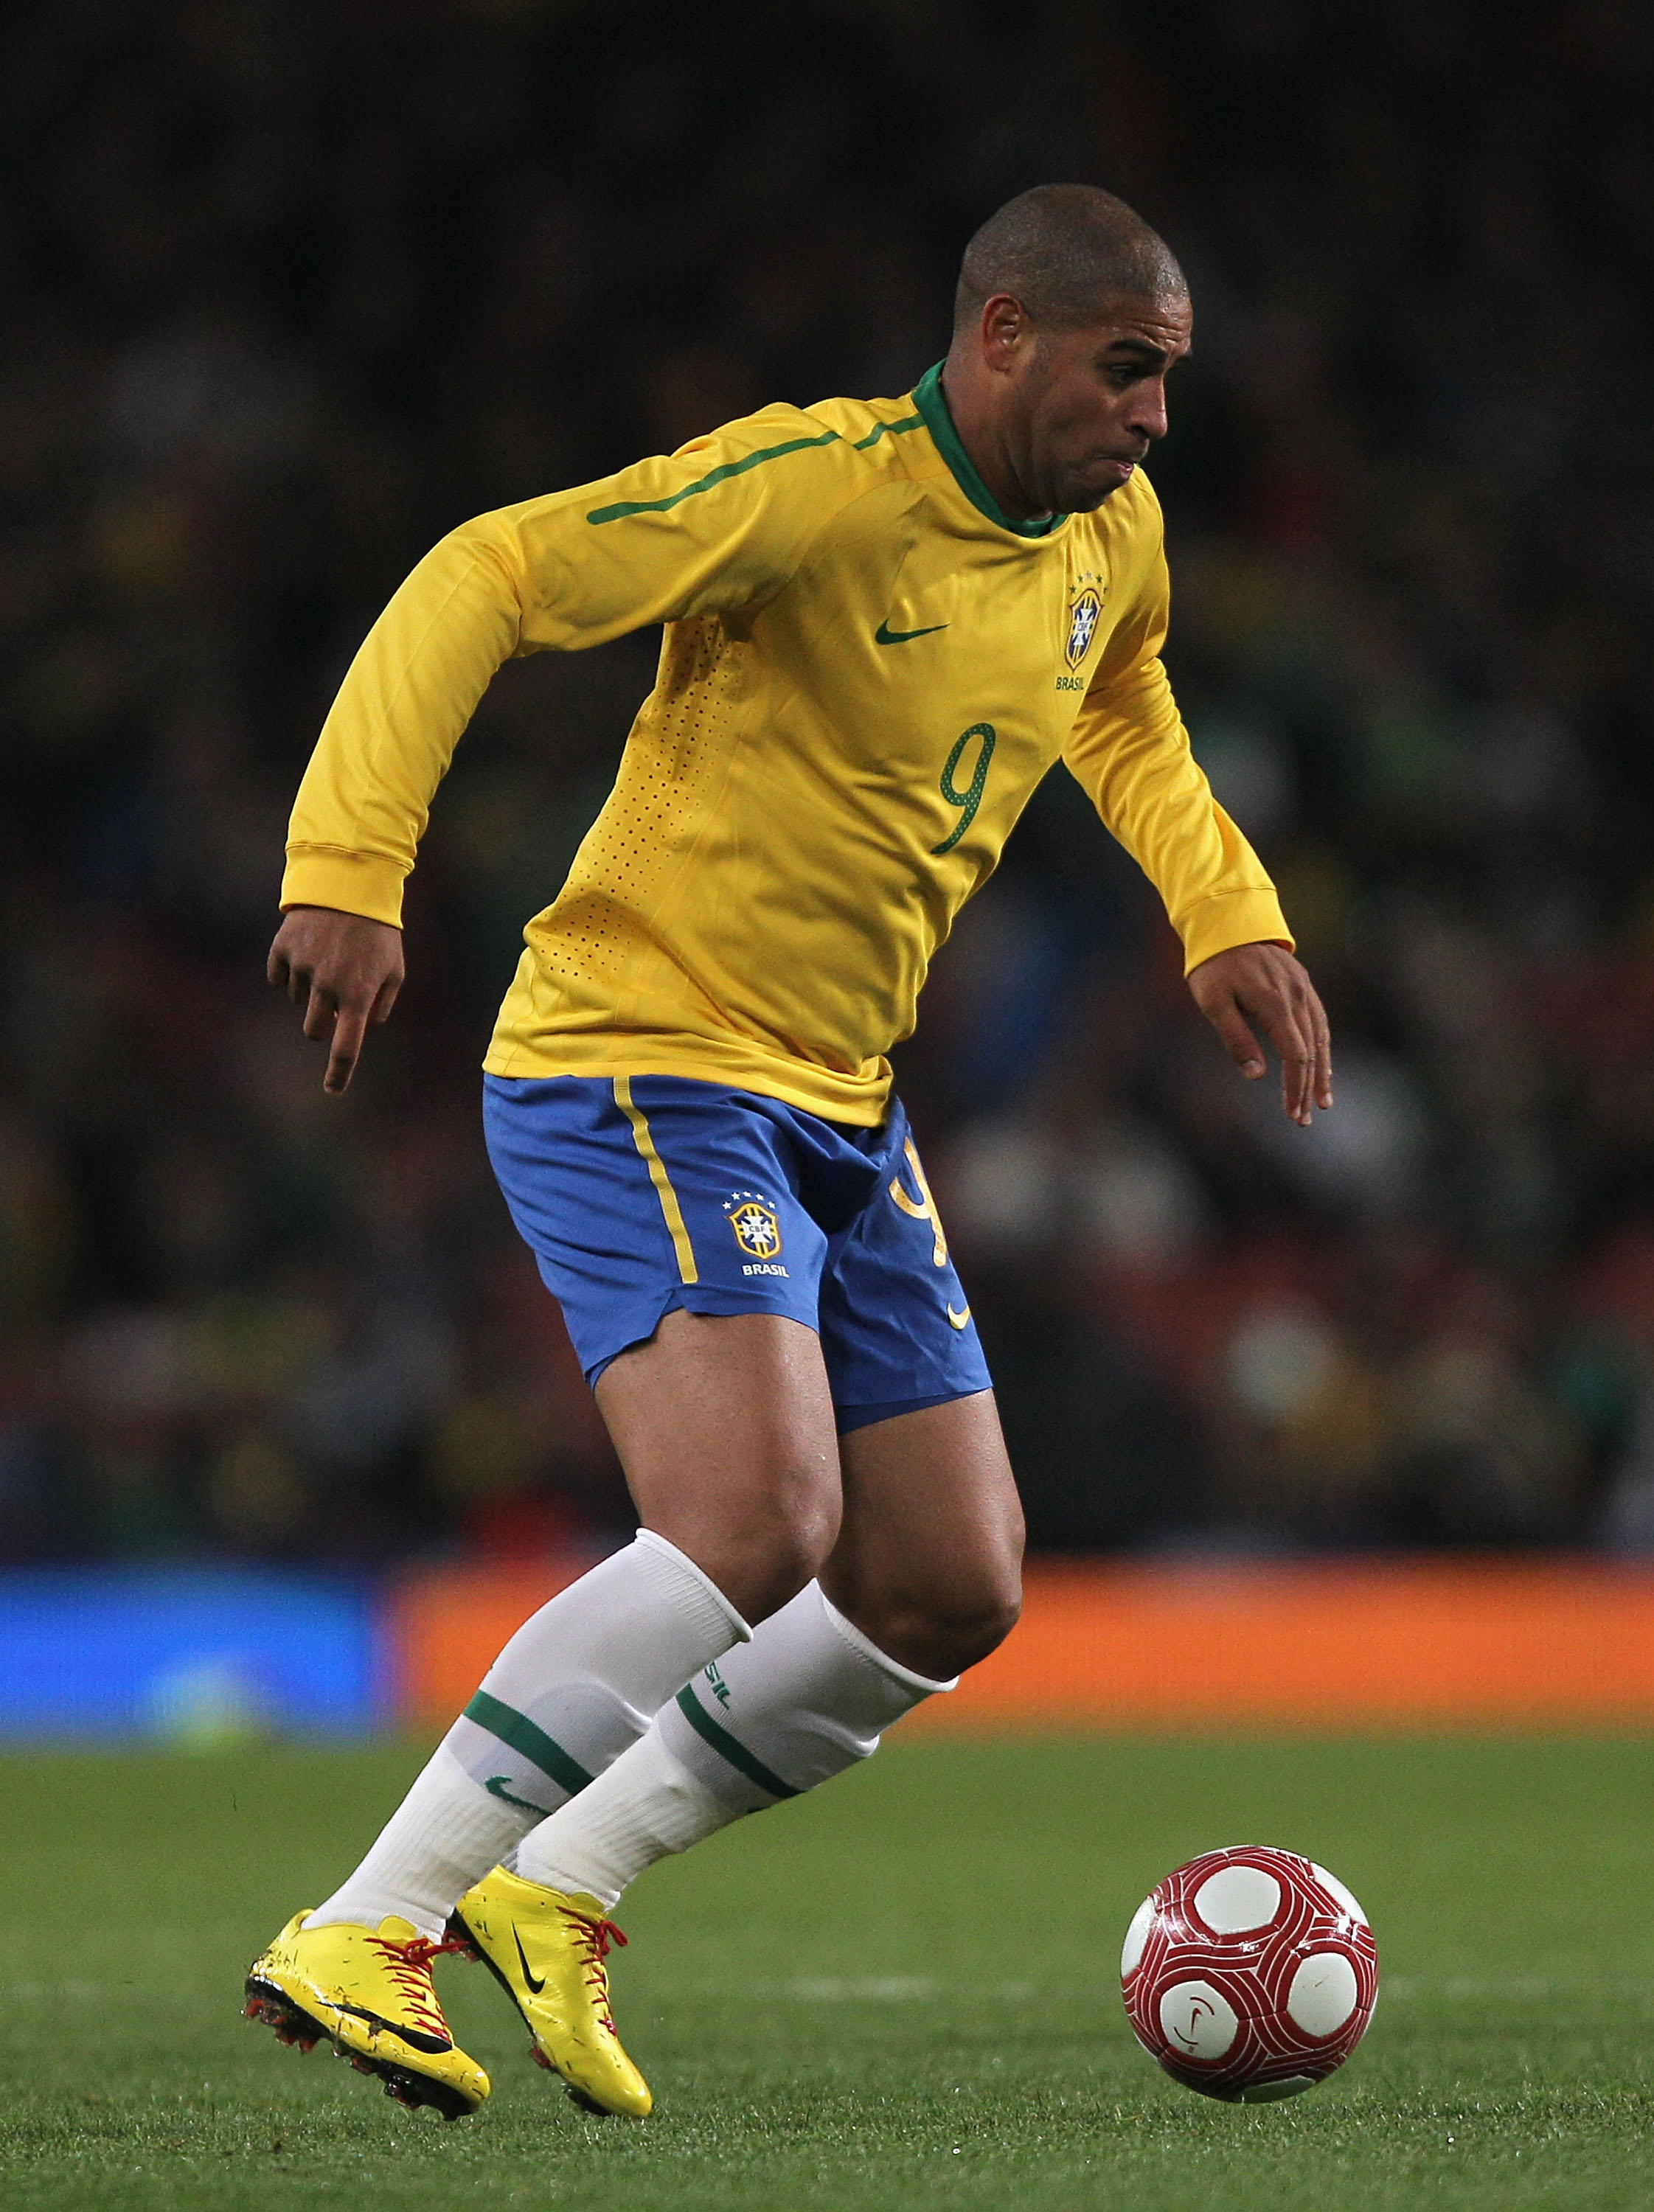 LONDON, ENGLAND - MARCH 02:  Adriano of Brazil in action during the International Friendly match between Republic of Ireland and Brazil played at Emirates Stadium on March 2, 2010 in London, England.  (Photo by Hamish Blair/Getty Images)